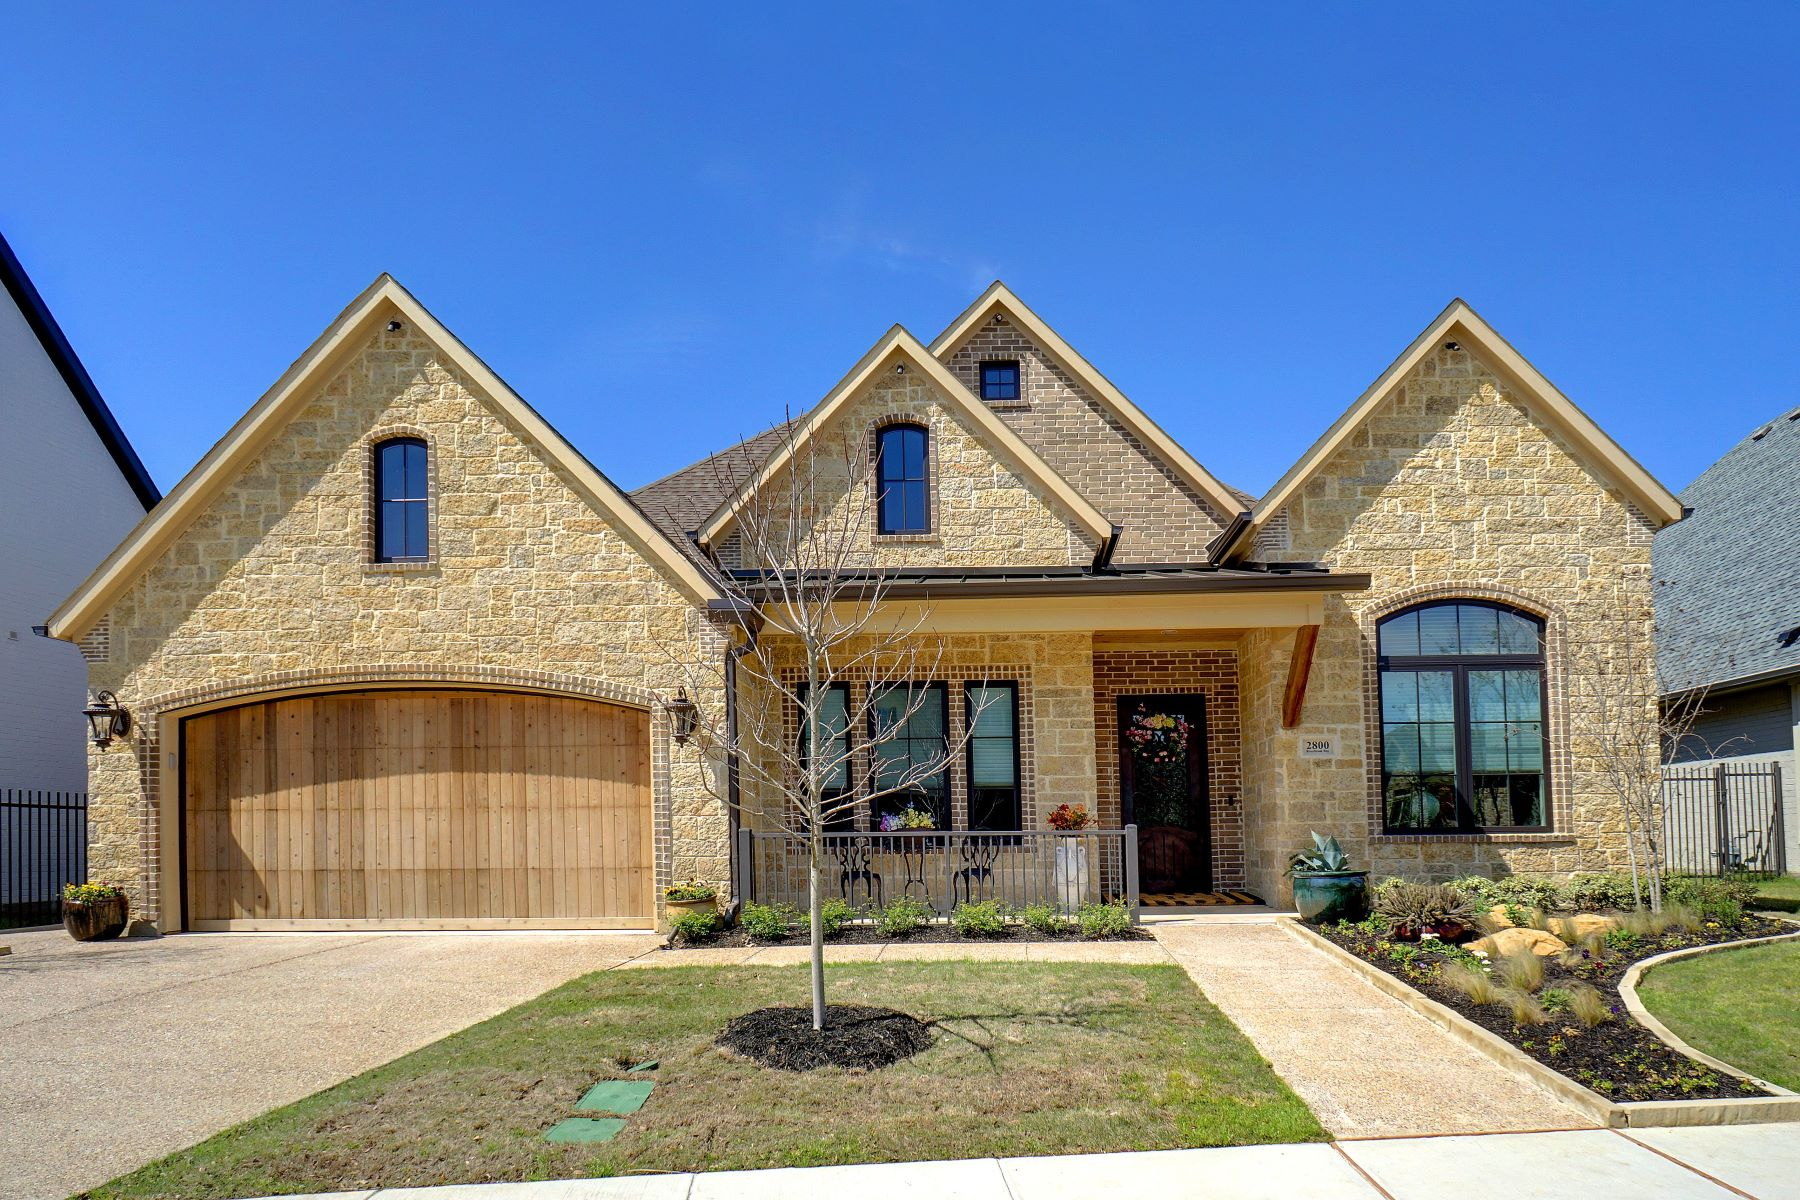 Single Family Homes for Sale at Gorgeous custom home in 55 + S. Village Watermere 2800 Riverbrook Way Southlake, Texas 76092 United States